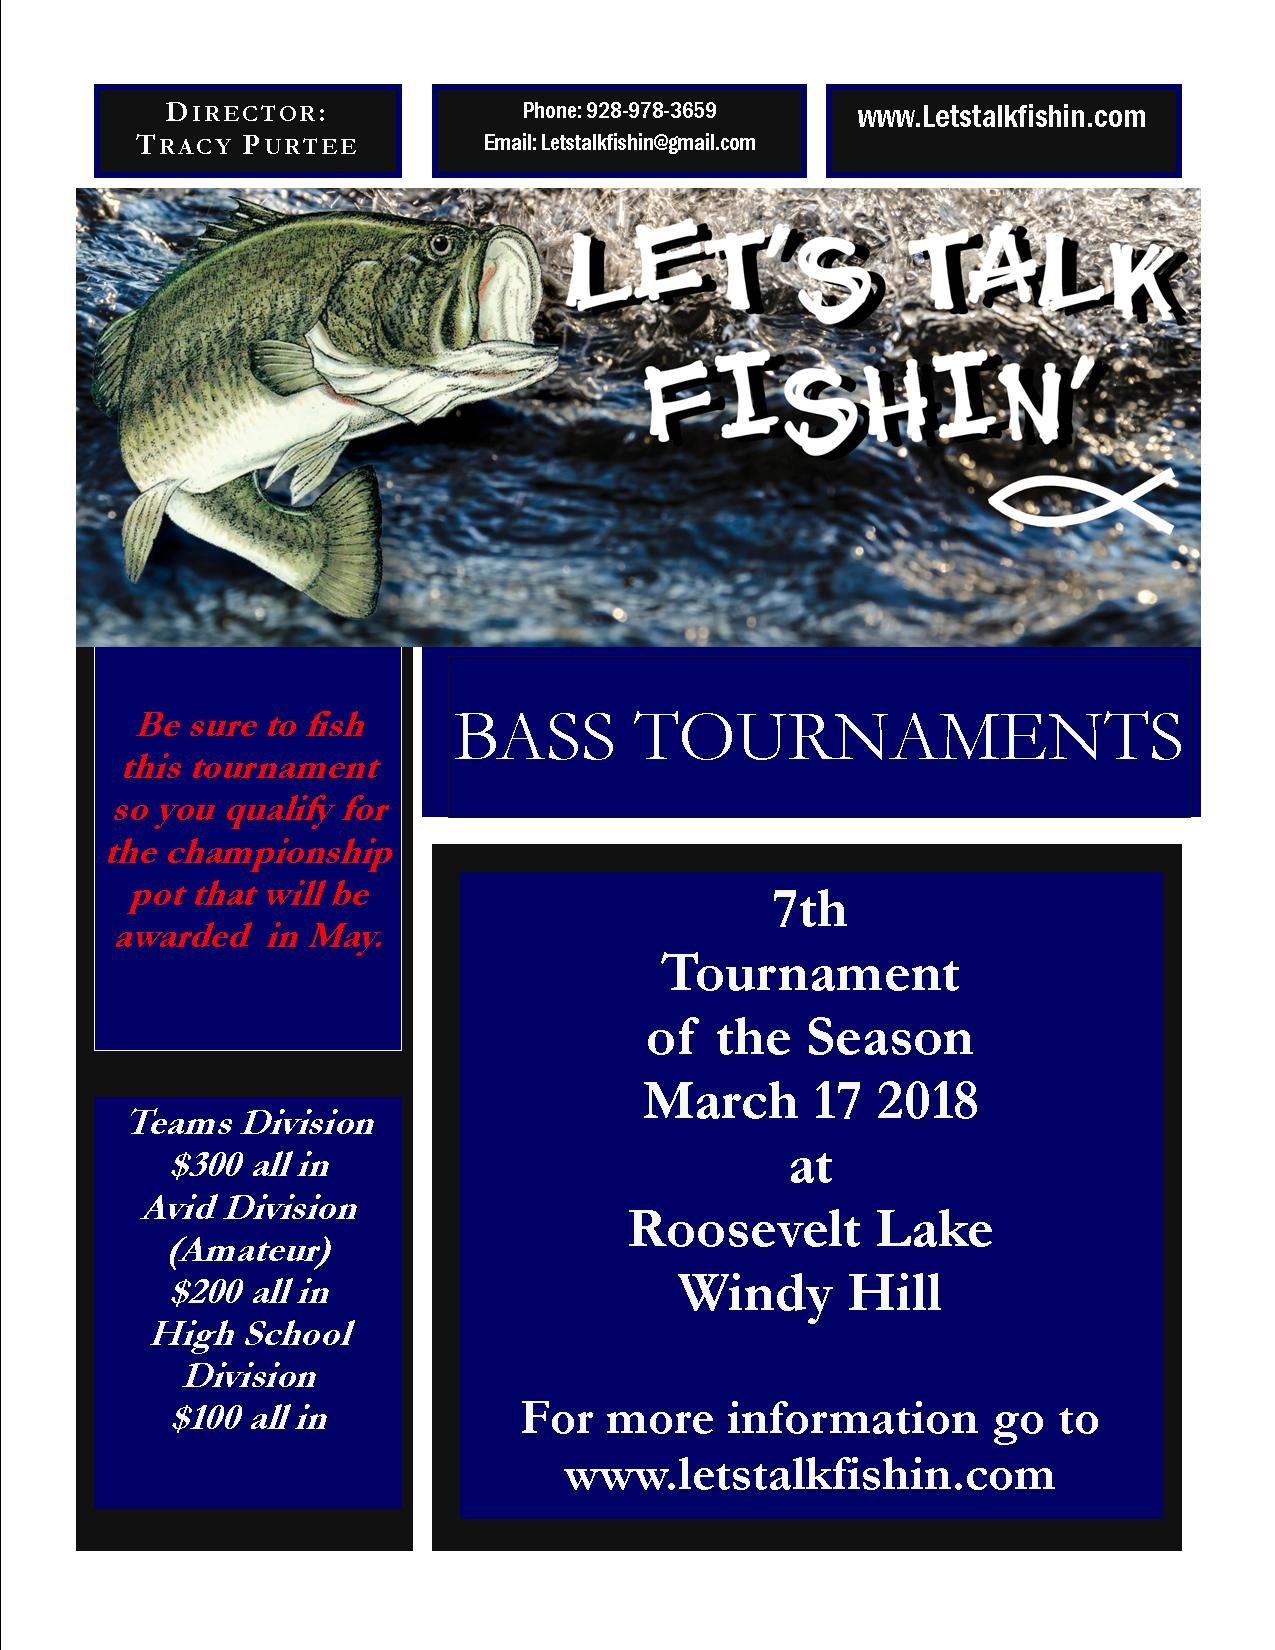 Click image for larger version  Name:7th Tournament.jpg Views:1855 Size:283.6 KB ID:96826